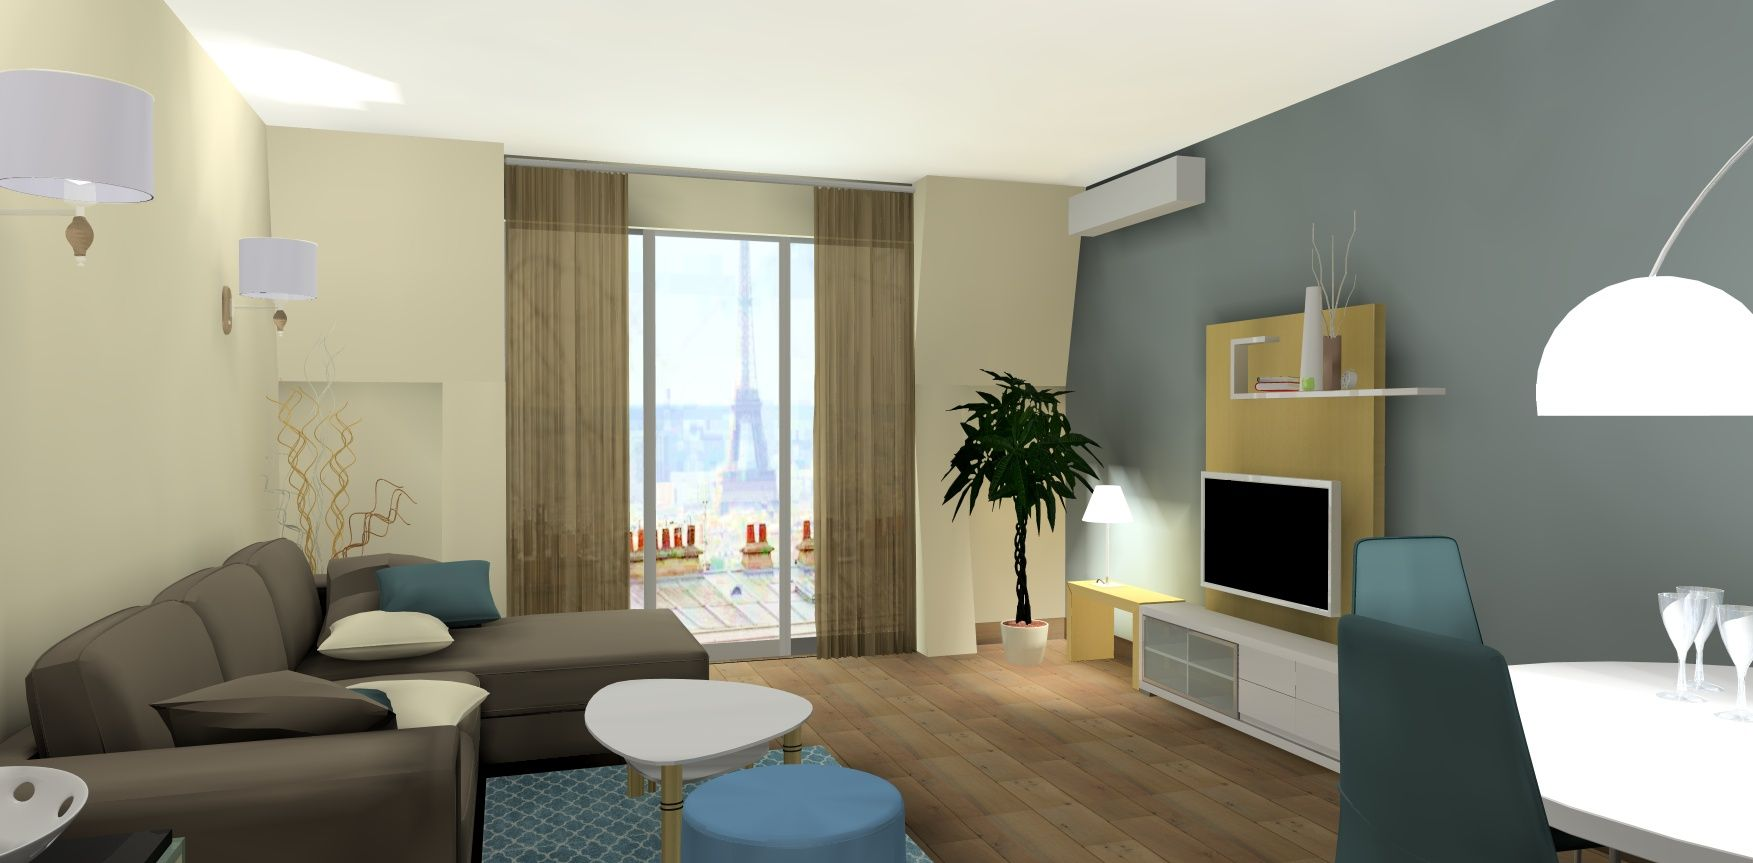 Vue 3d salon lin et bleu appartement plan 3d salon for Simulation 3d chambre